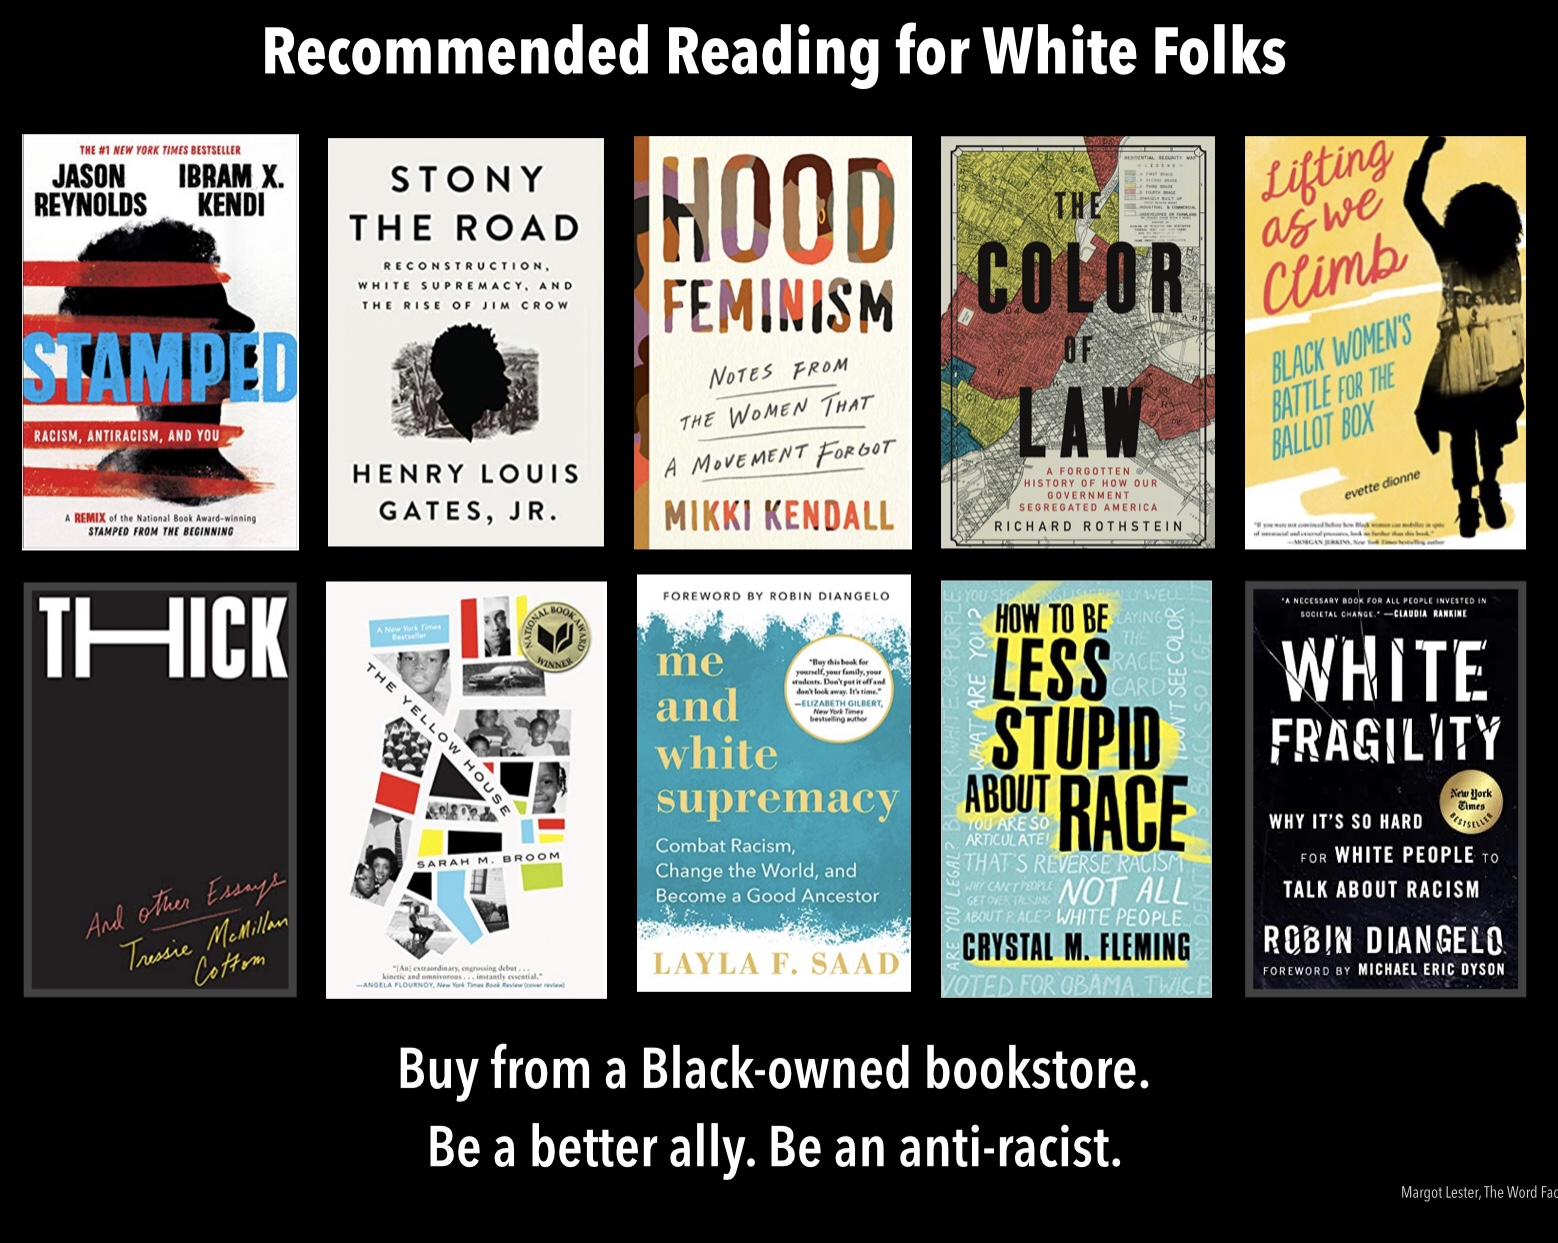 Recommended reading to help White folks understand the Black experience and racism in America.